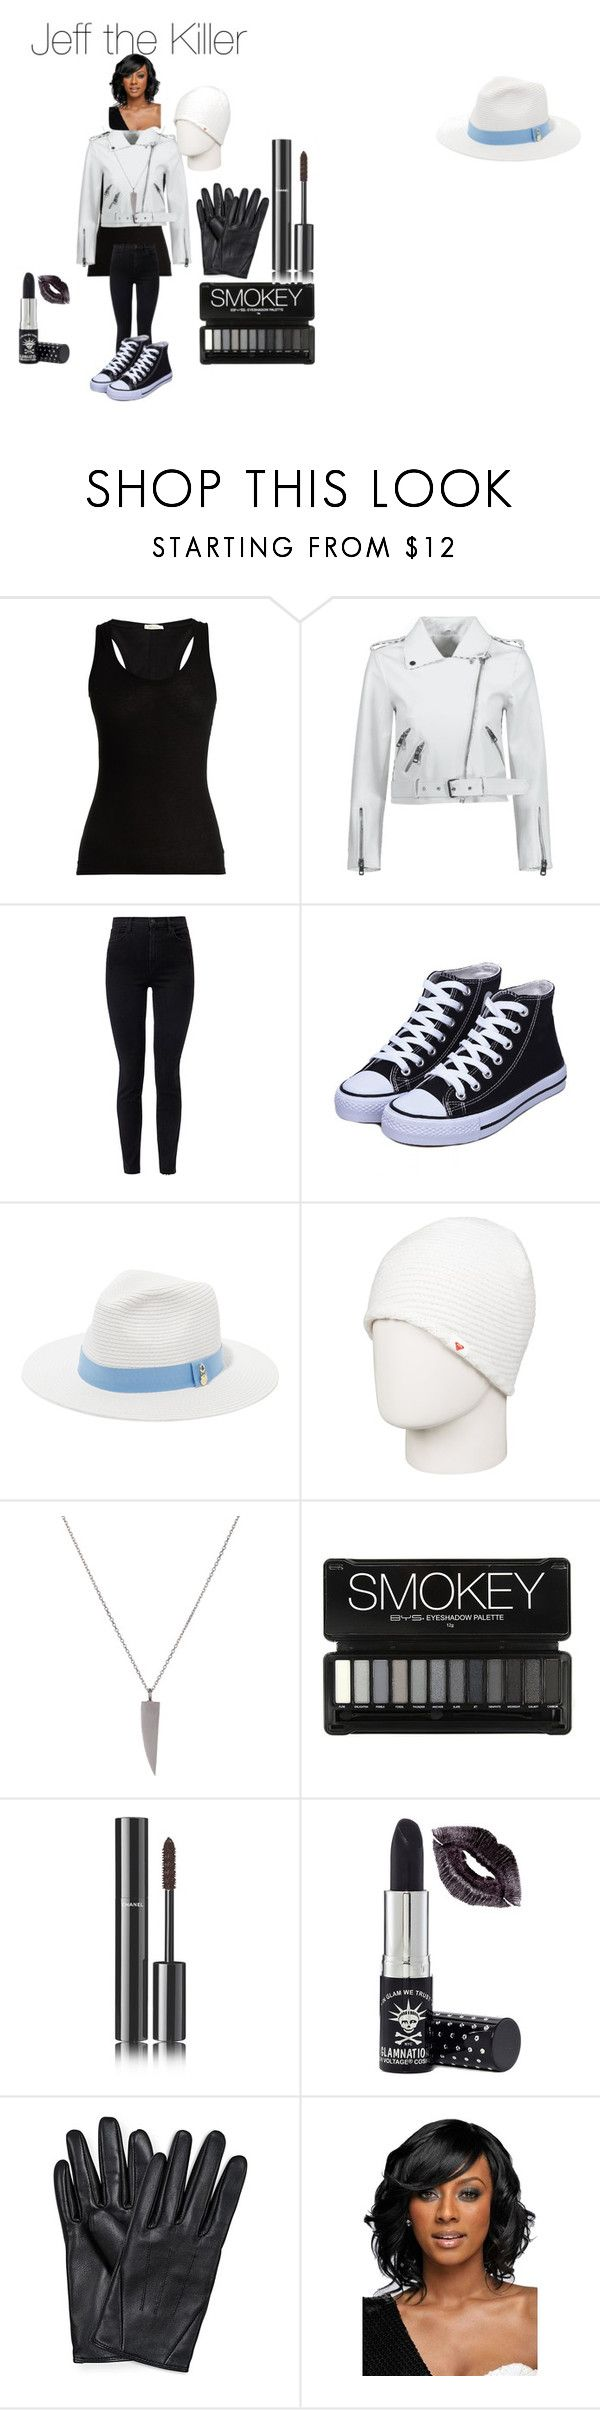 """Jeff the Killer Creepypasta"" by tori-camilleri on Polyvore featuring Skin, J Brand, Melissa Odabash, Roxy, Chanel, Manic Panic NYC and WithChic"